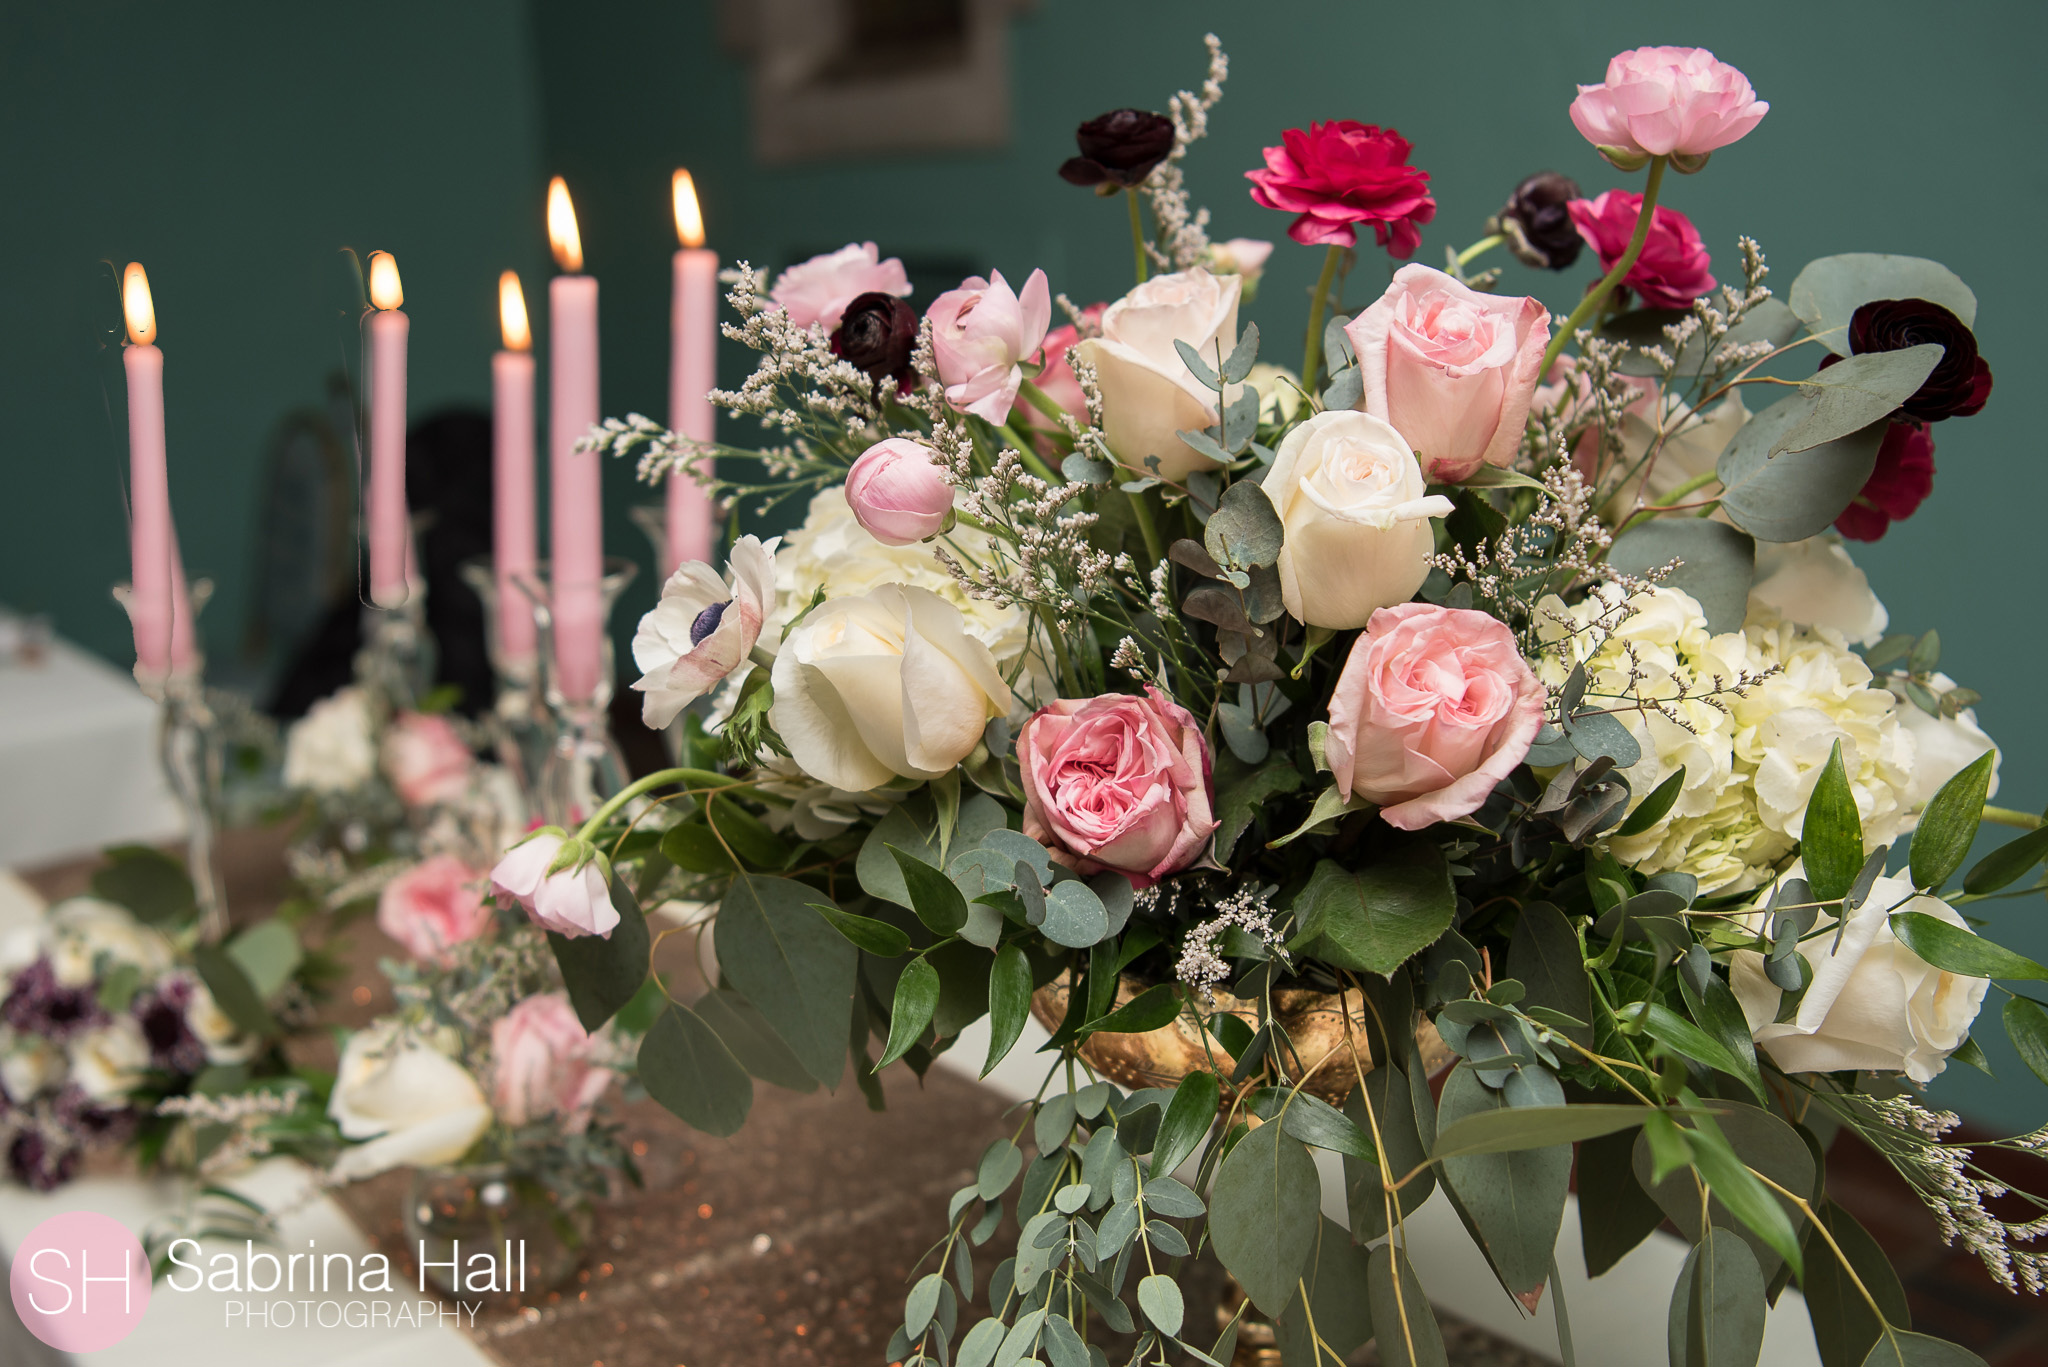 Wedding Flowers at Glenmoor Country Club by the Garden by the Gate Floral Design. Photo: Sabrina Hall Photography